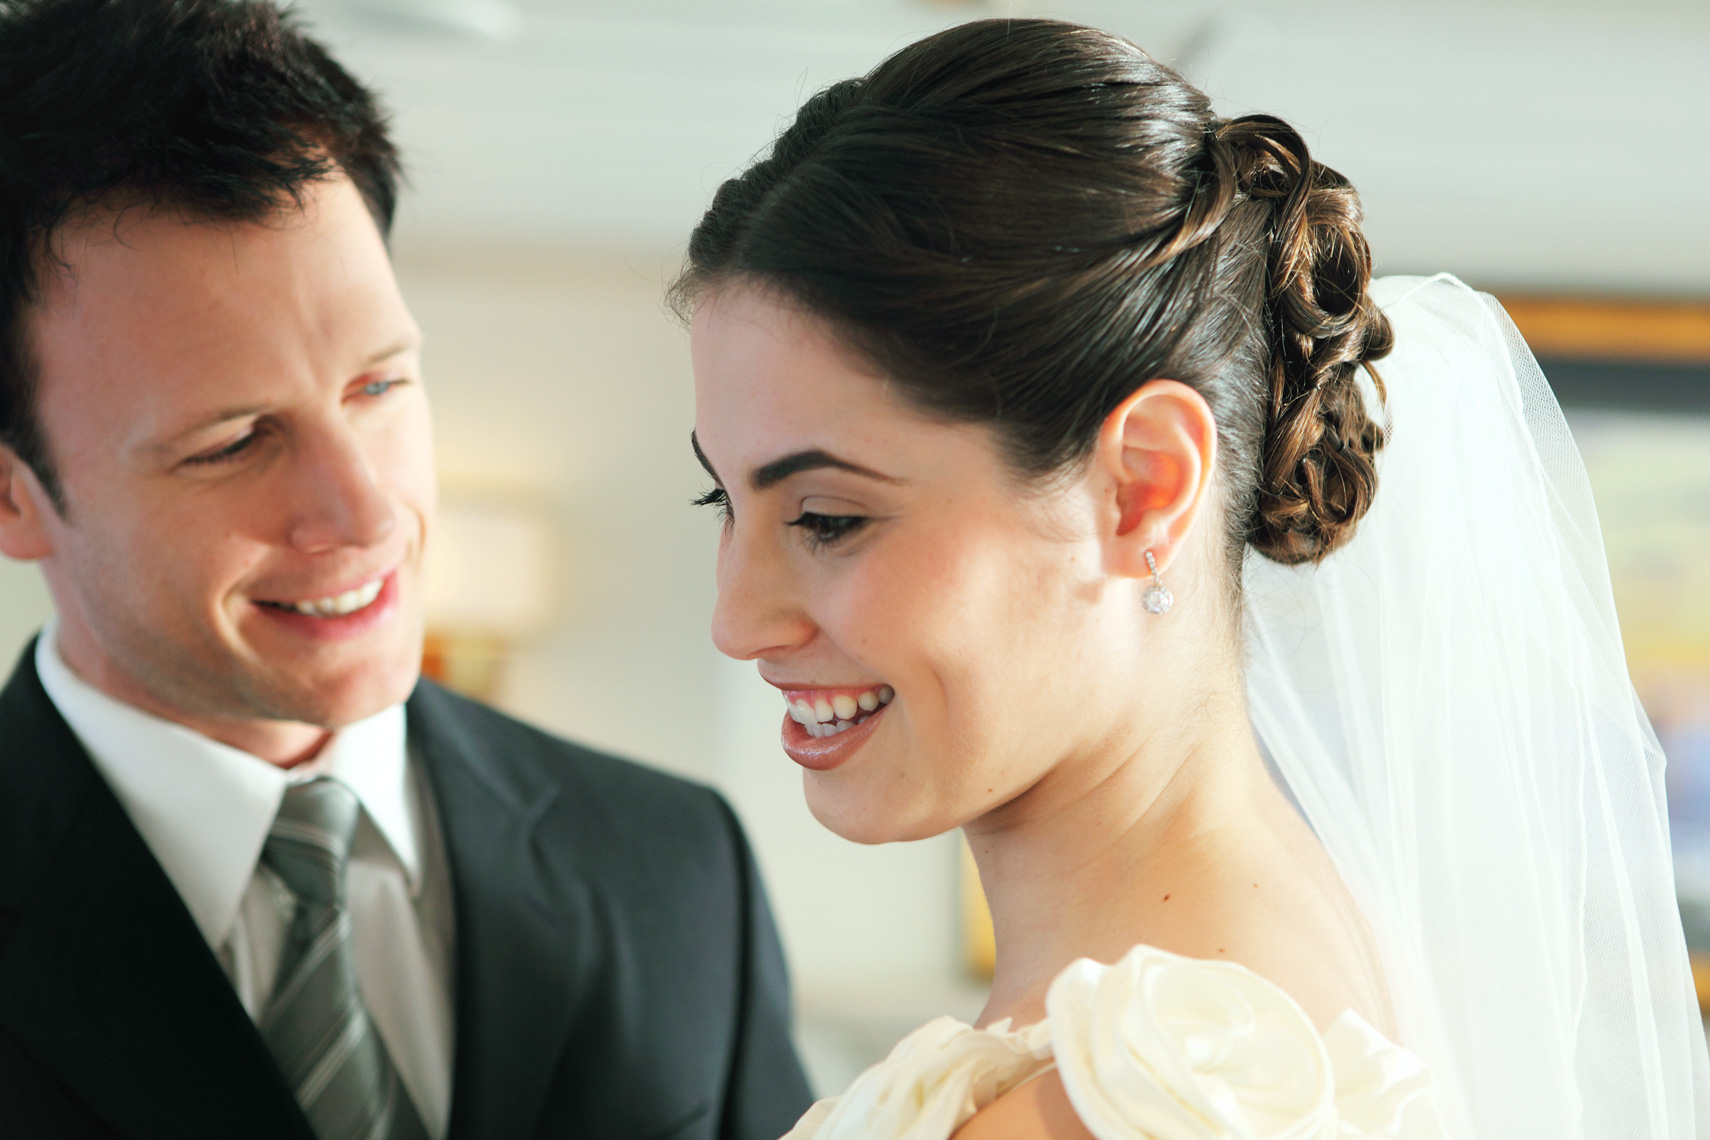 4-BRIDE_GROOM_BHC_WEBAPa